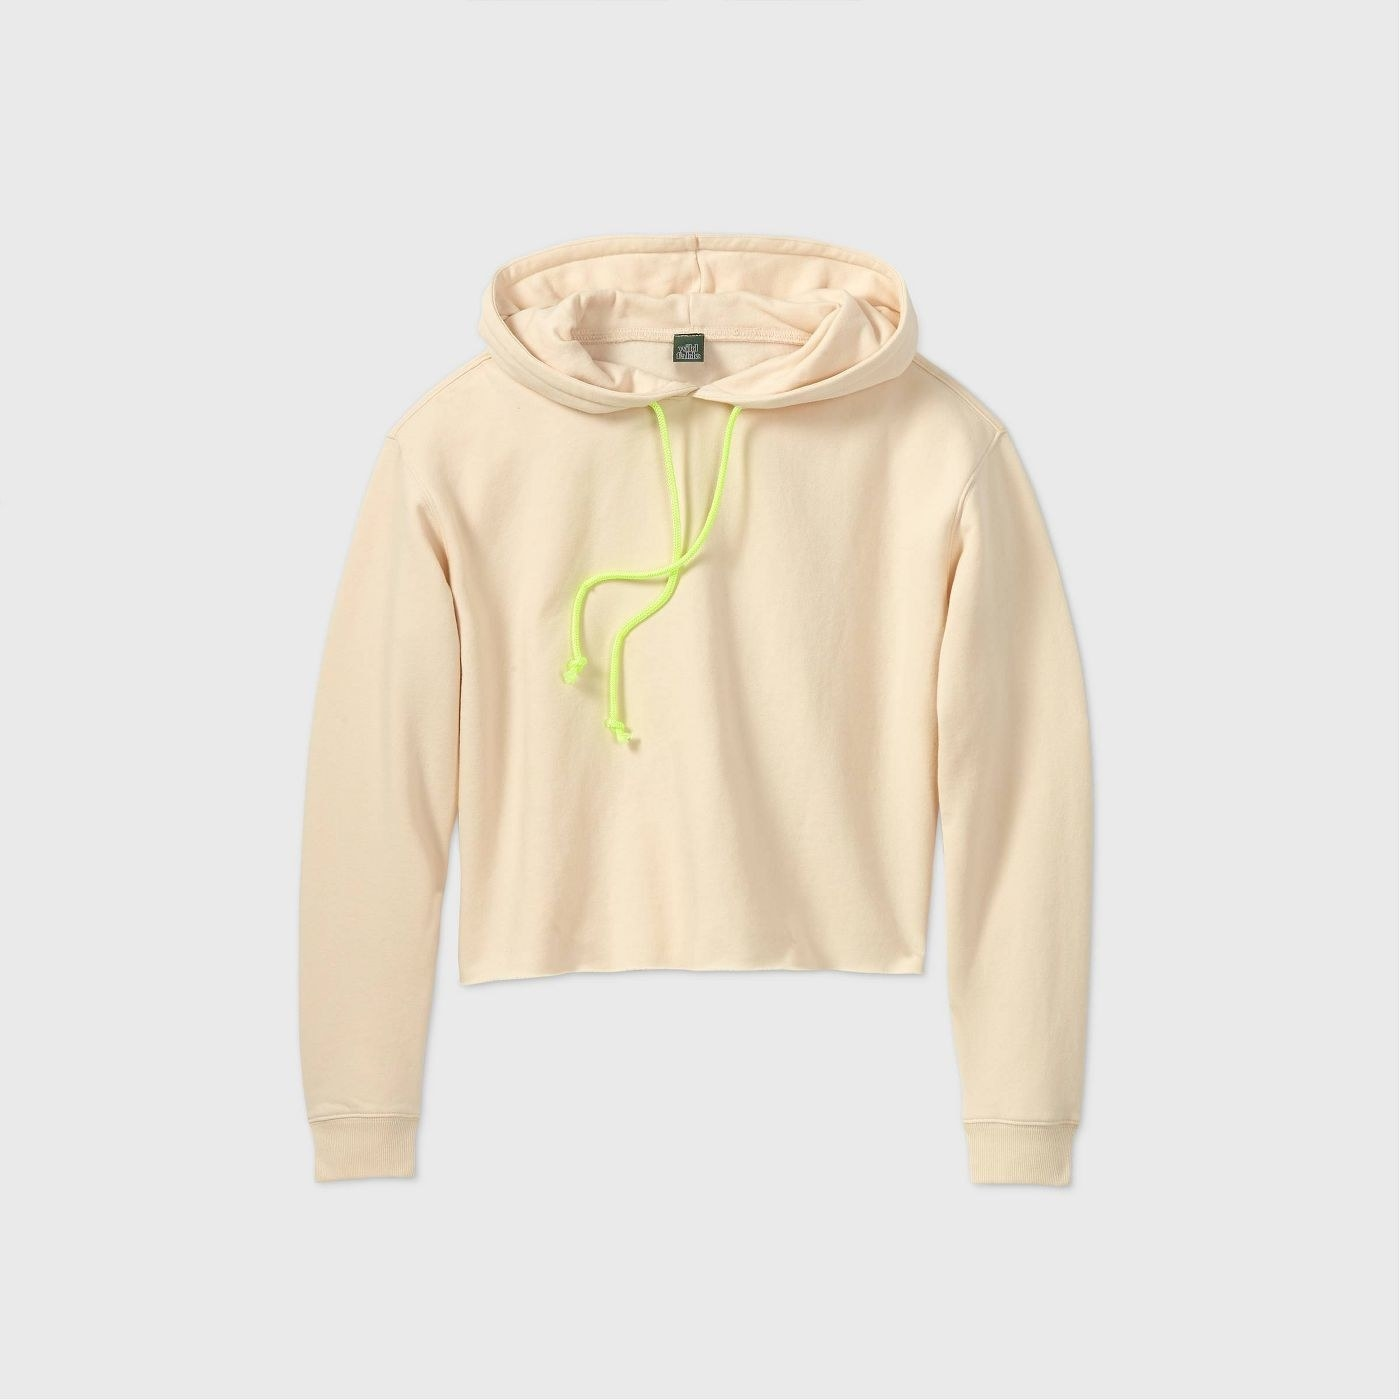 the stucco-colored hoodie